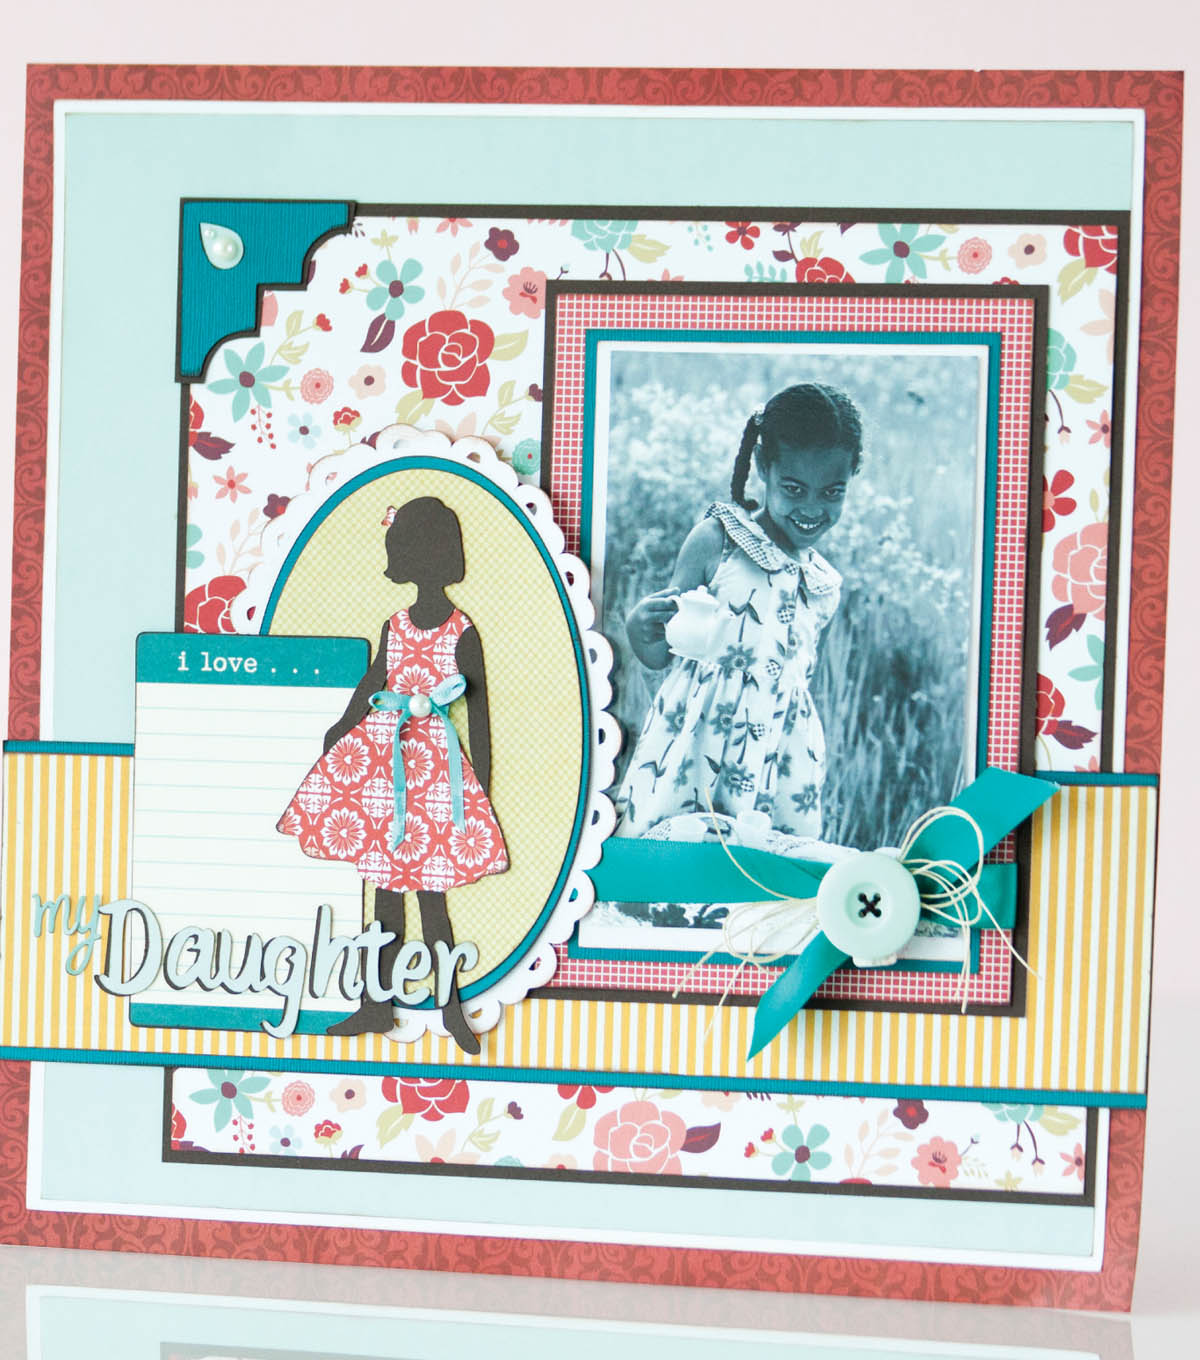 My Daughter Scrapbook Layout